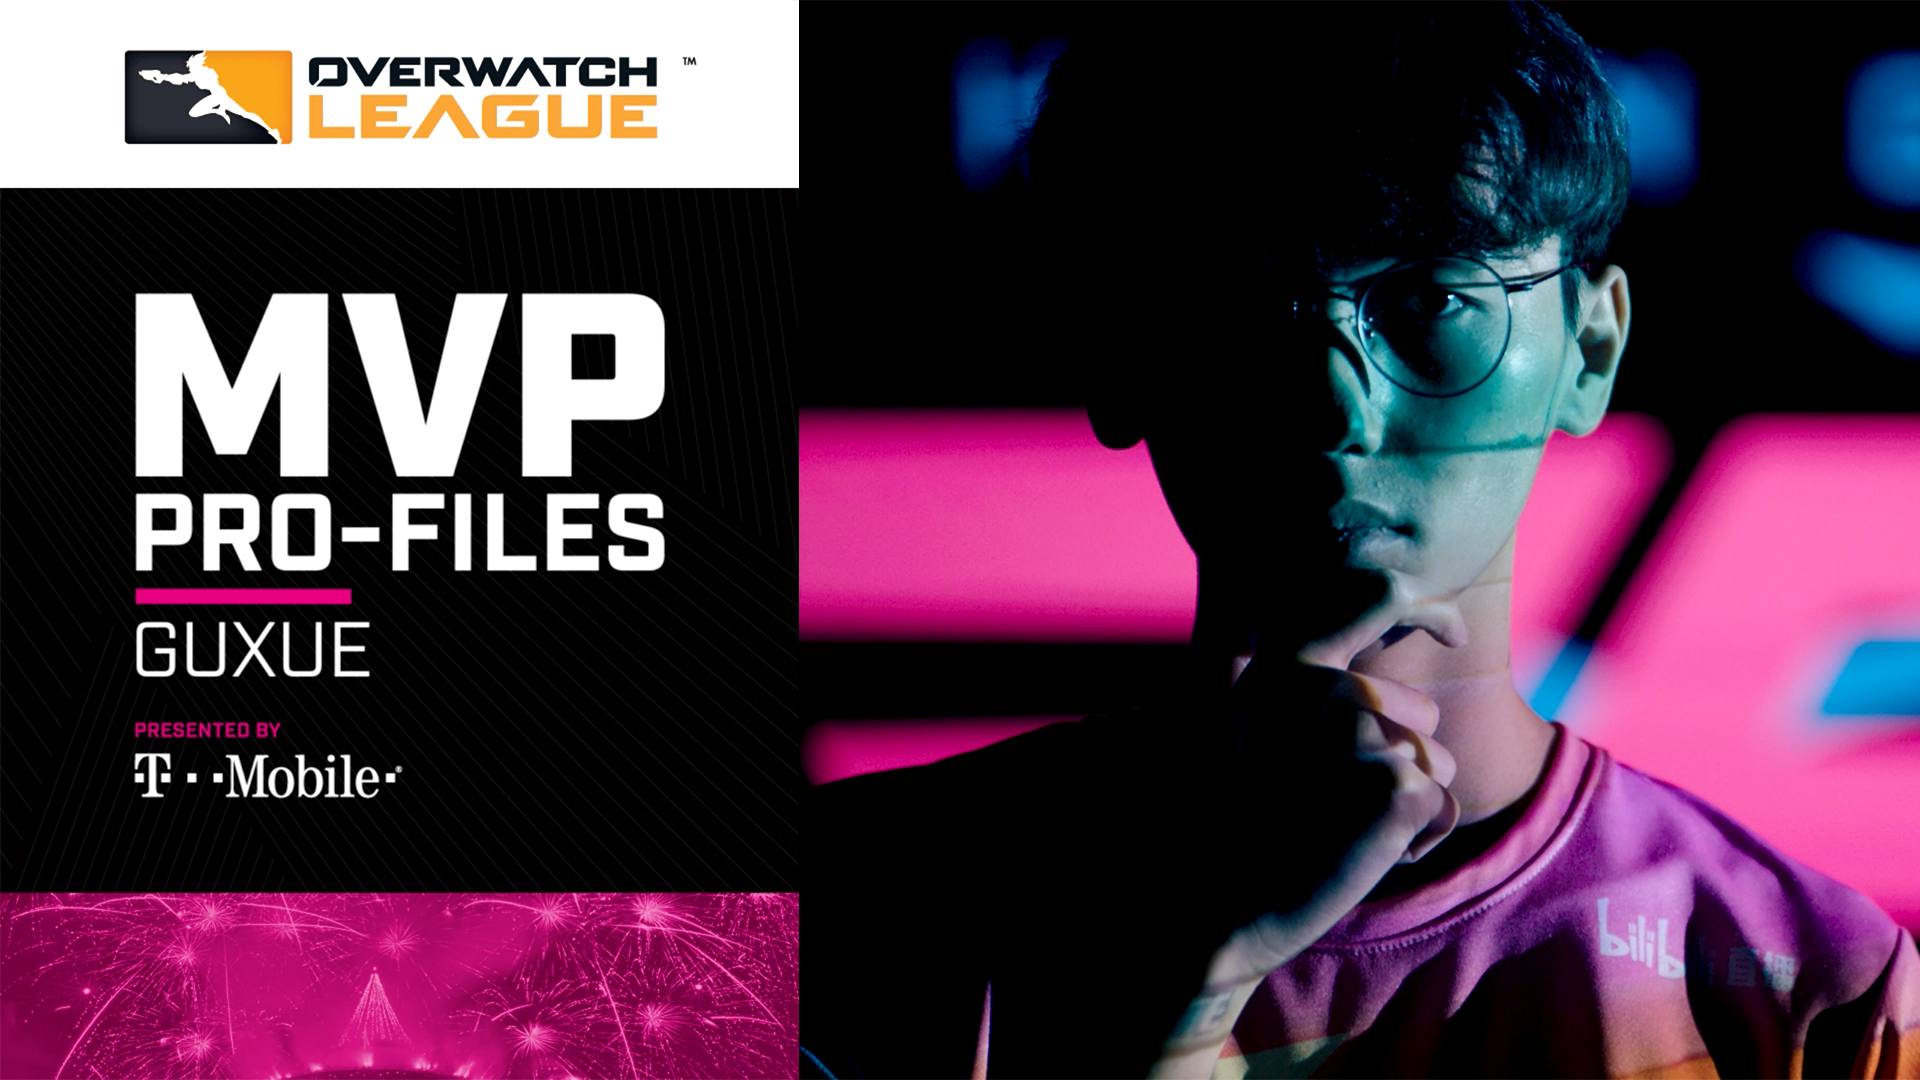 Overwatch League MVP Pro-File: guxue